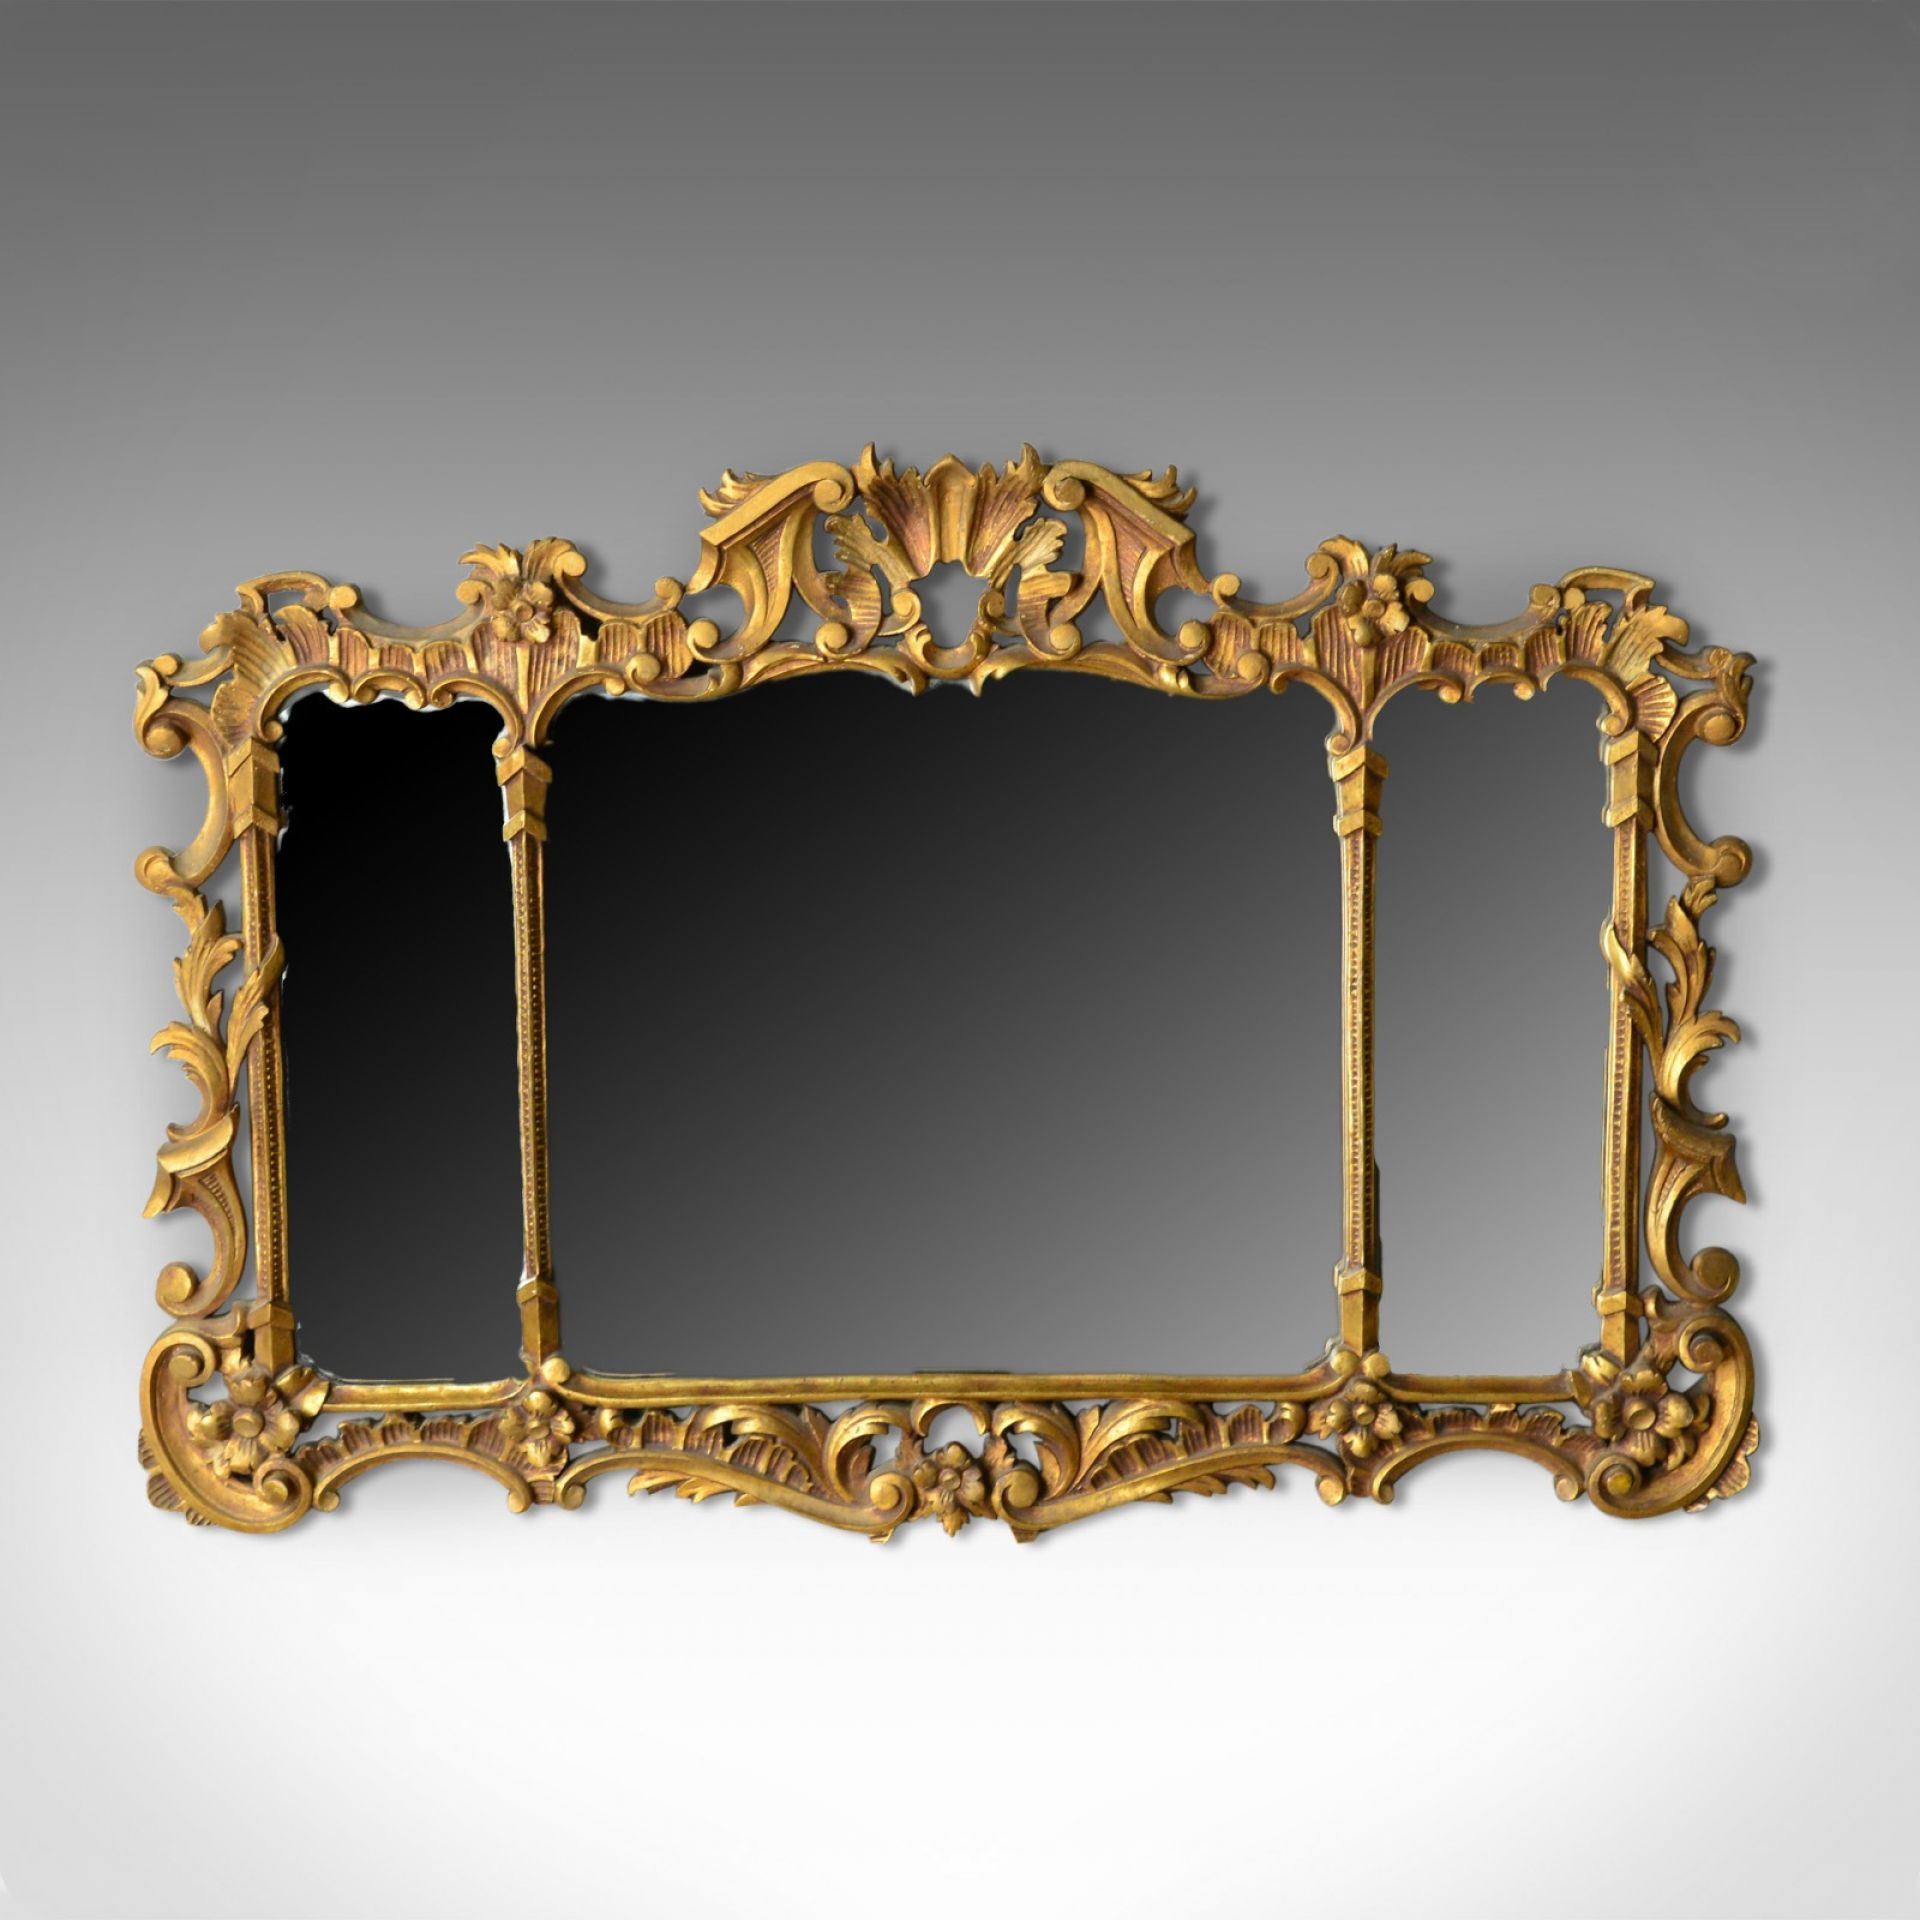 Antique Overmantel Mirror, English, Regency Revival, Giltwood, Triptych c.1900